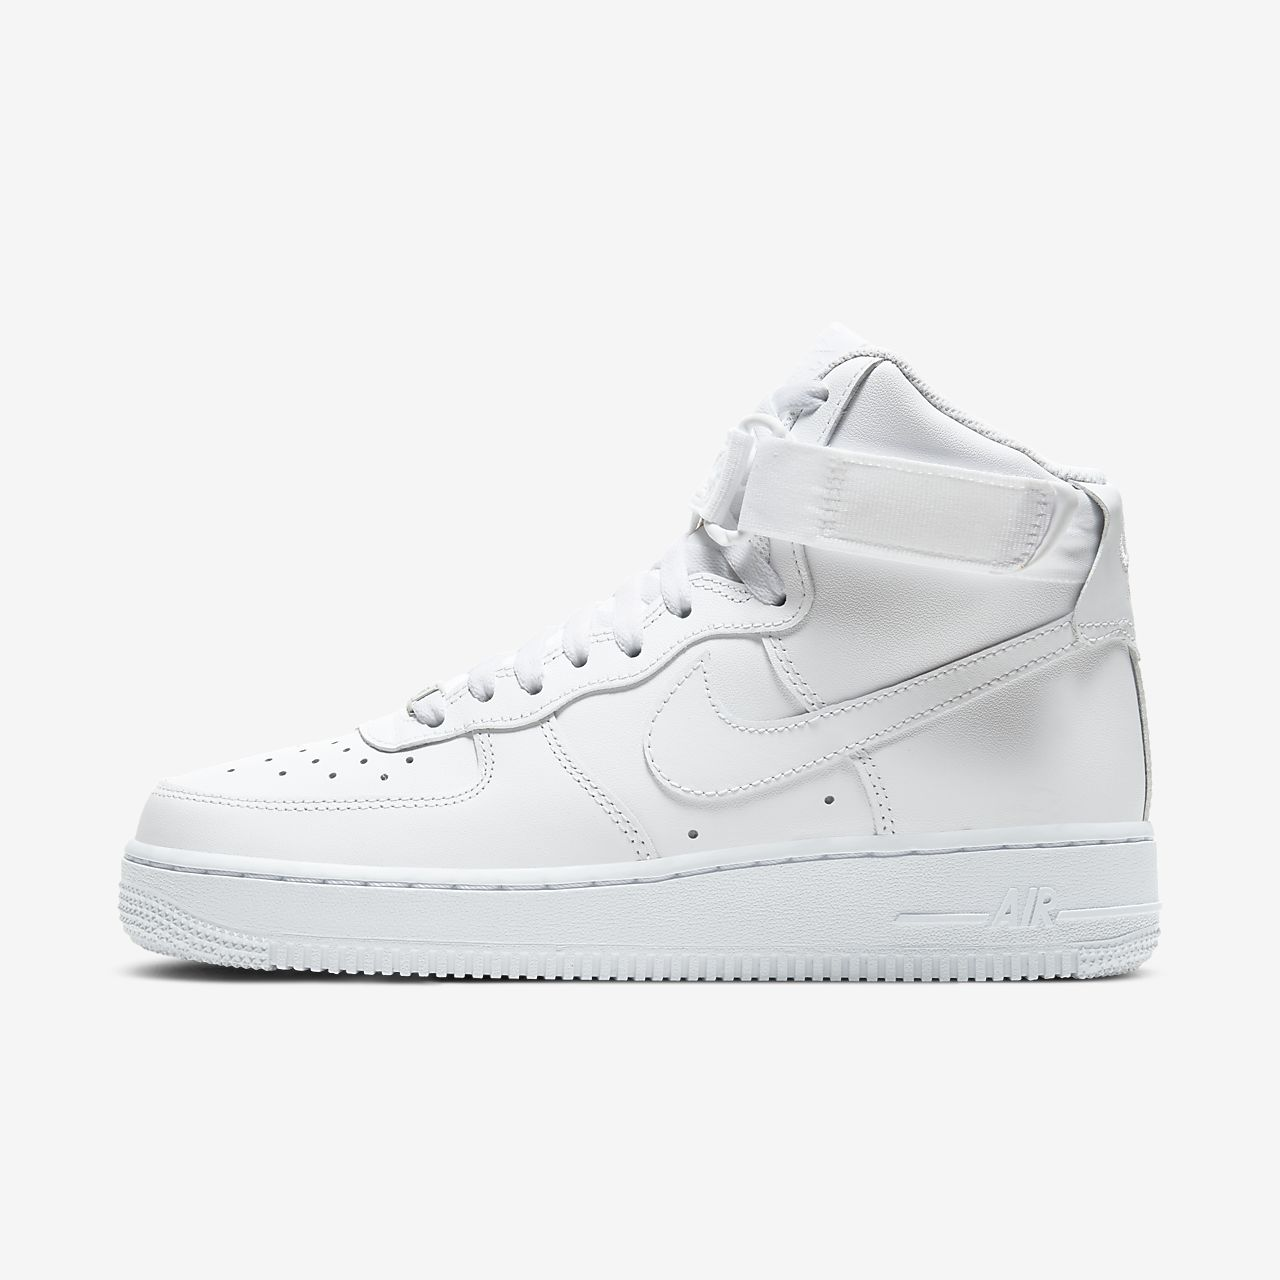 best website 53398 97e49 ... Nike Air Force 1 High 08 LE Women s Shoe